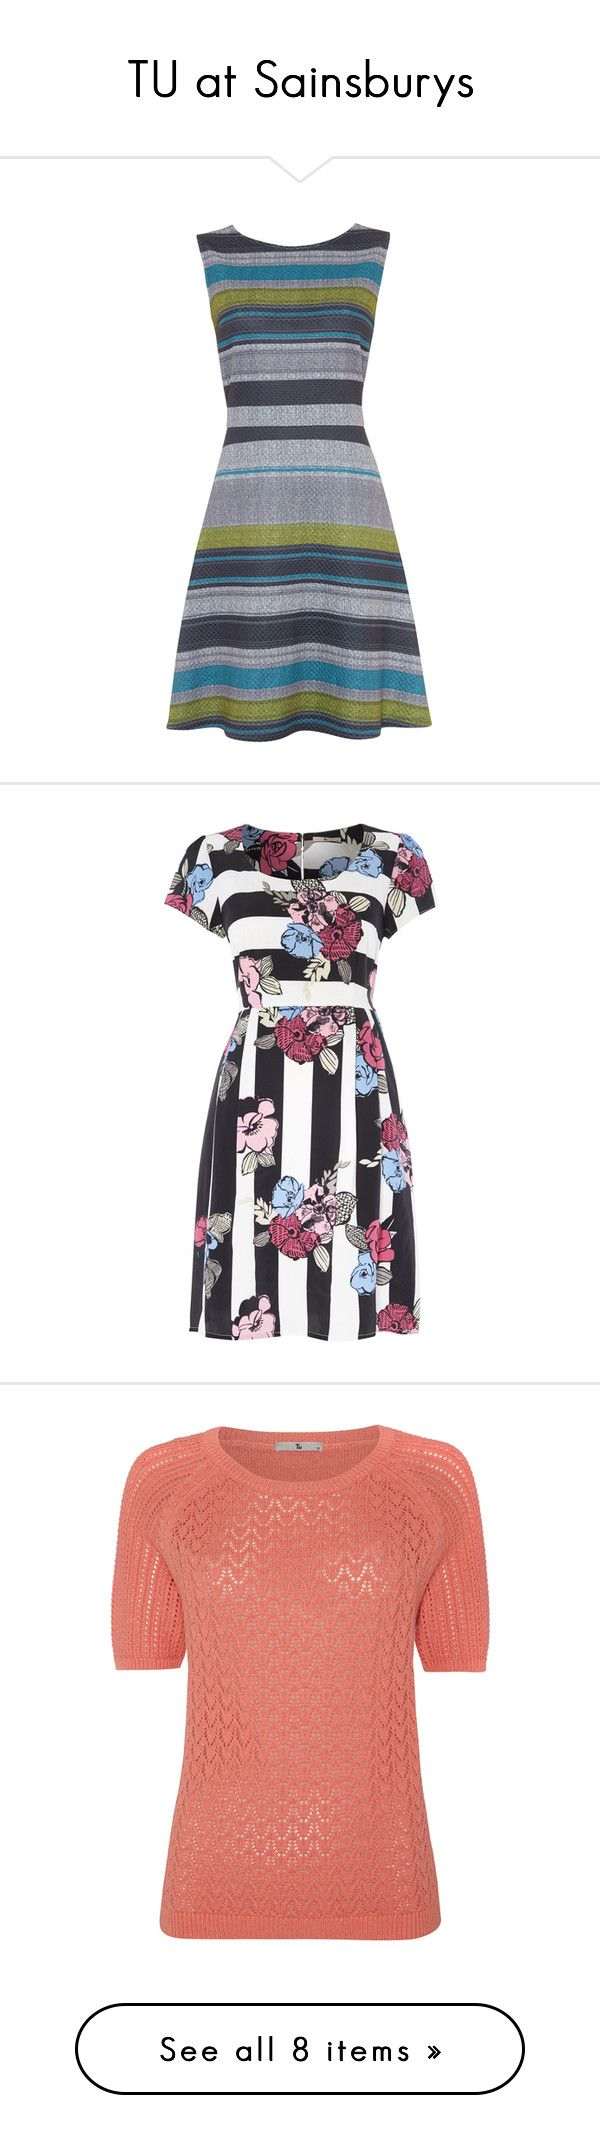 TU at Sainsburys by booksnbrooches on Polyvore featuring dresses, geometric print dress, a line dress, sleeveless striped dress, print dress, ponte dress, striped dress, white knee length dress, floral tea dress and stripe dress